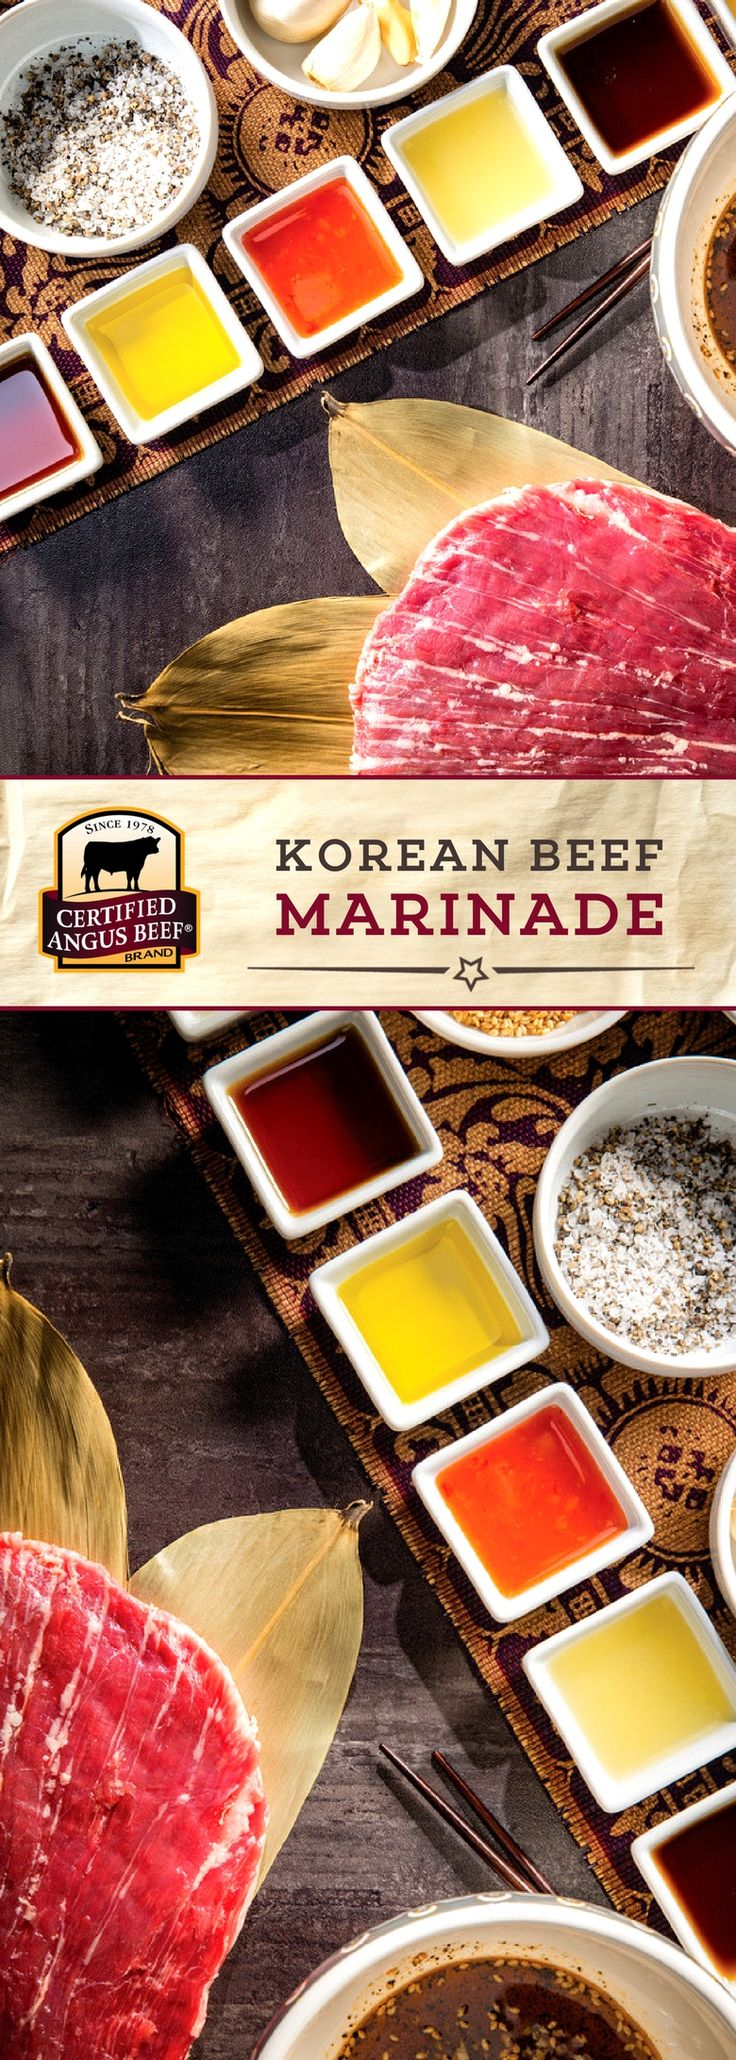 Certified Angus Beef®️️ brand Korean Beef Marinade combines mirin, orange juice, sweet chili sauce, and other DELICIOUS flavors for an unforgetable marinade! Bring out FRESH flavors in your favorite cut of beef with this tasty mix of seasonings.  #bestangusbeef #certifiedangusbeef #marinade #seasoning